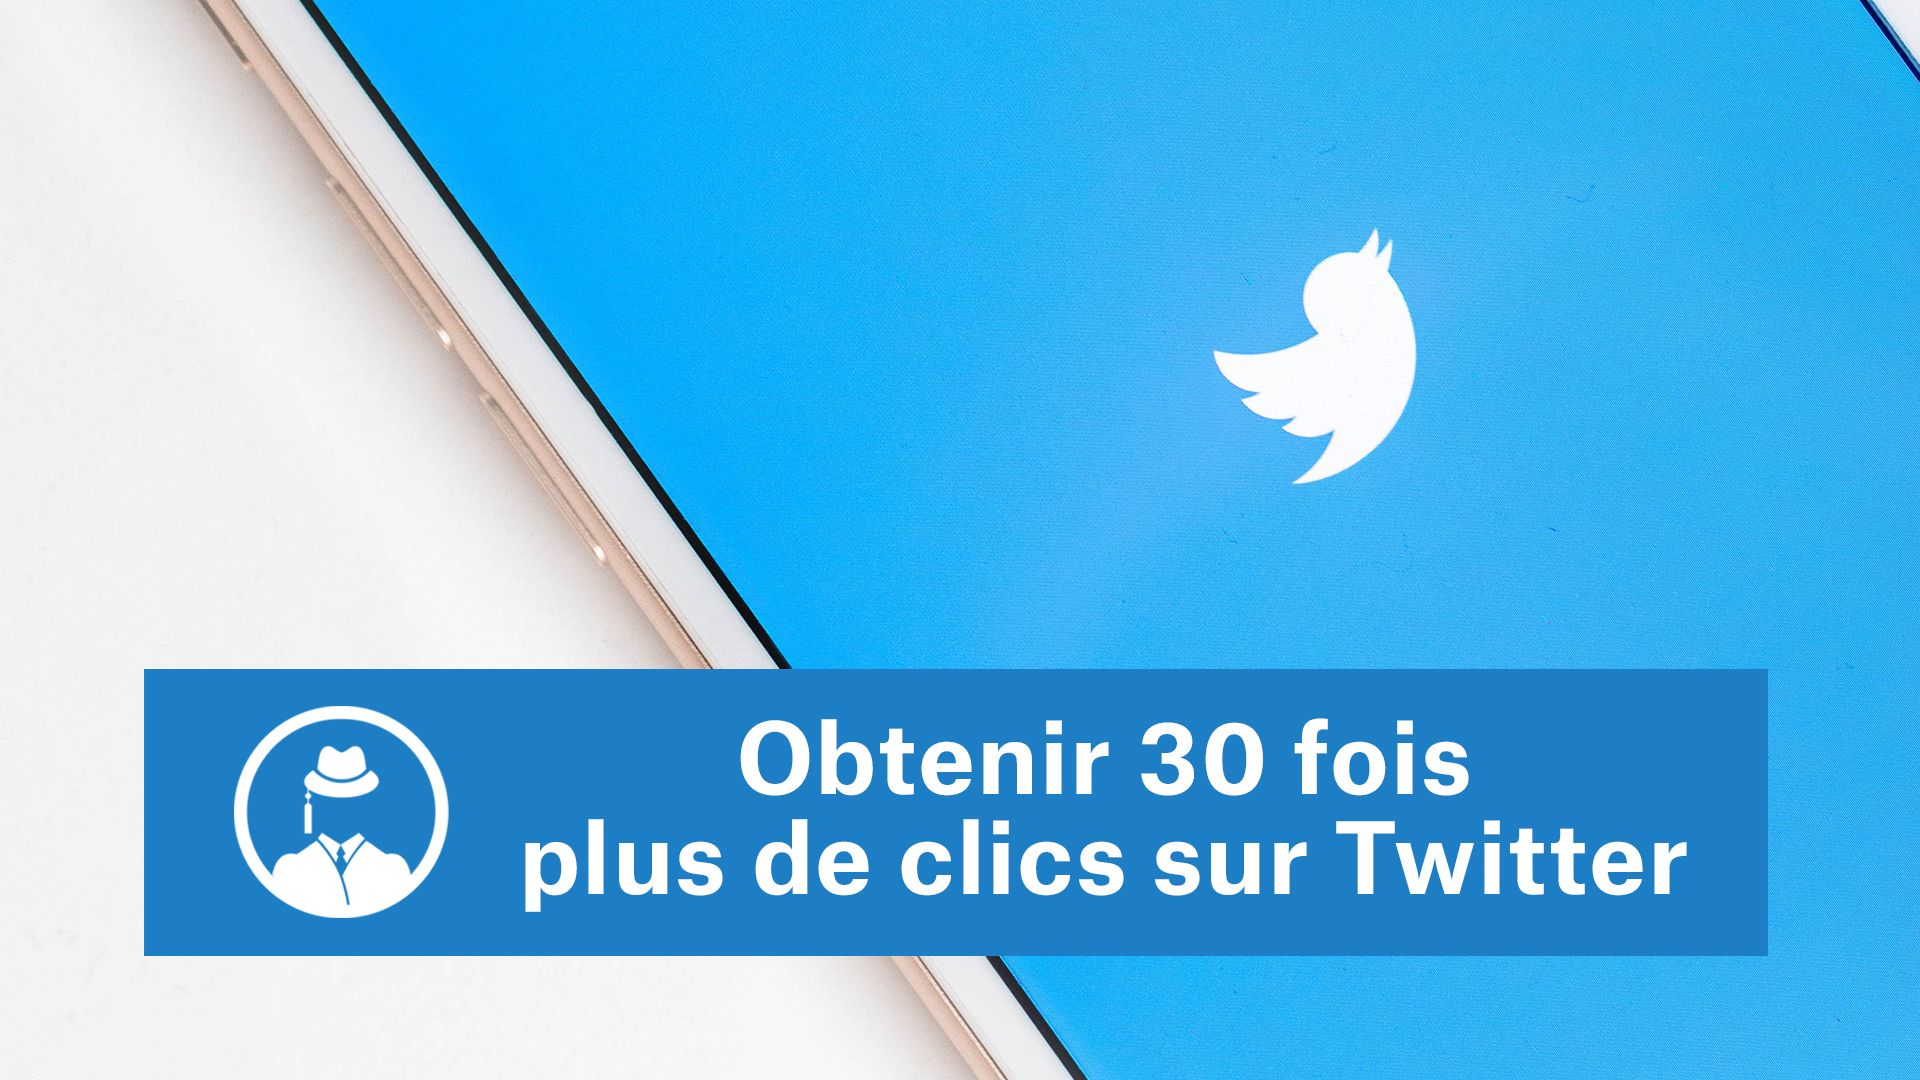 Obtenir 30 fois plus de clics sur Twitter #GrowthHacking #WebMarketing #FormationGrowthHacking #CentreDeFormationFrance #TunnelAARRR #AARRR #SocialMedia #CommunityManagement #SEO #Twitter